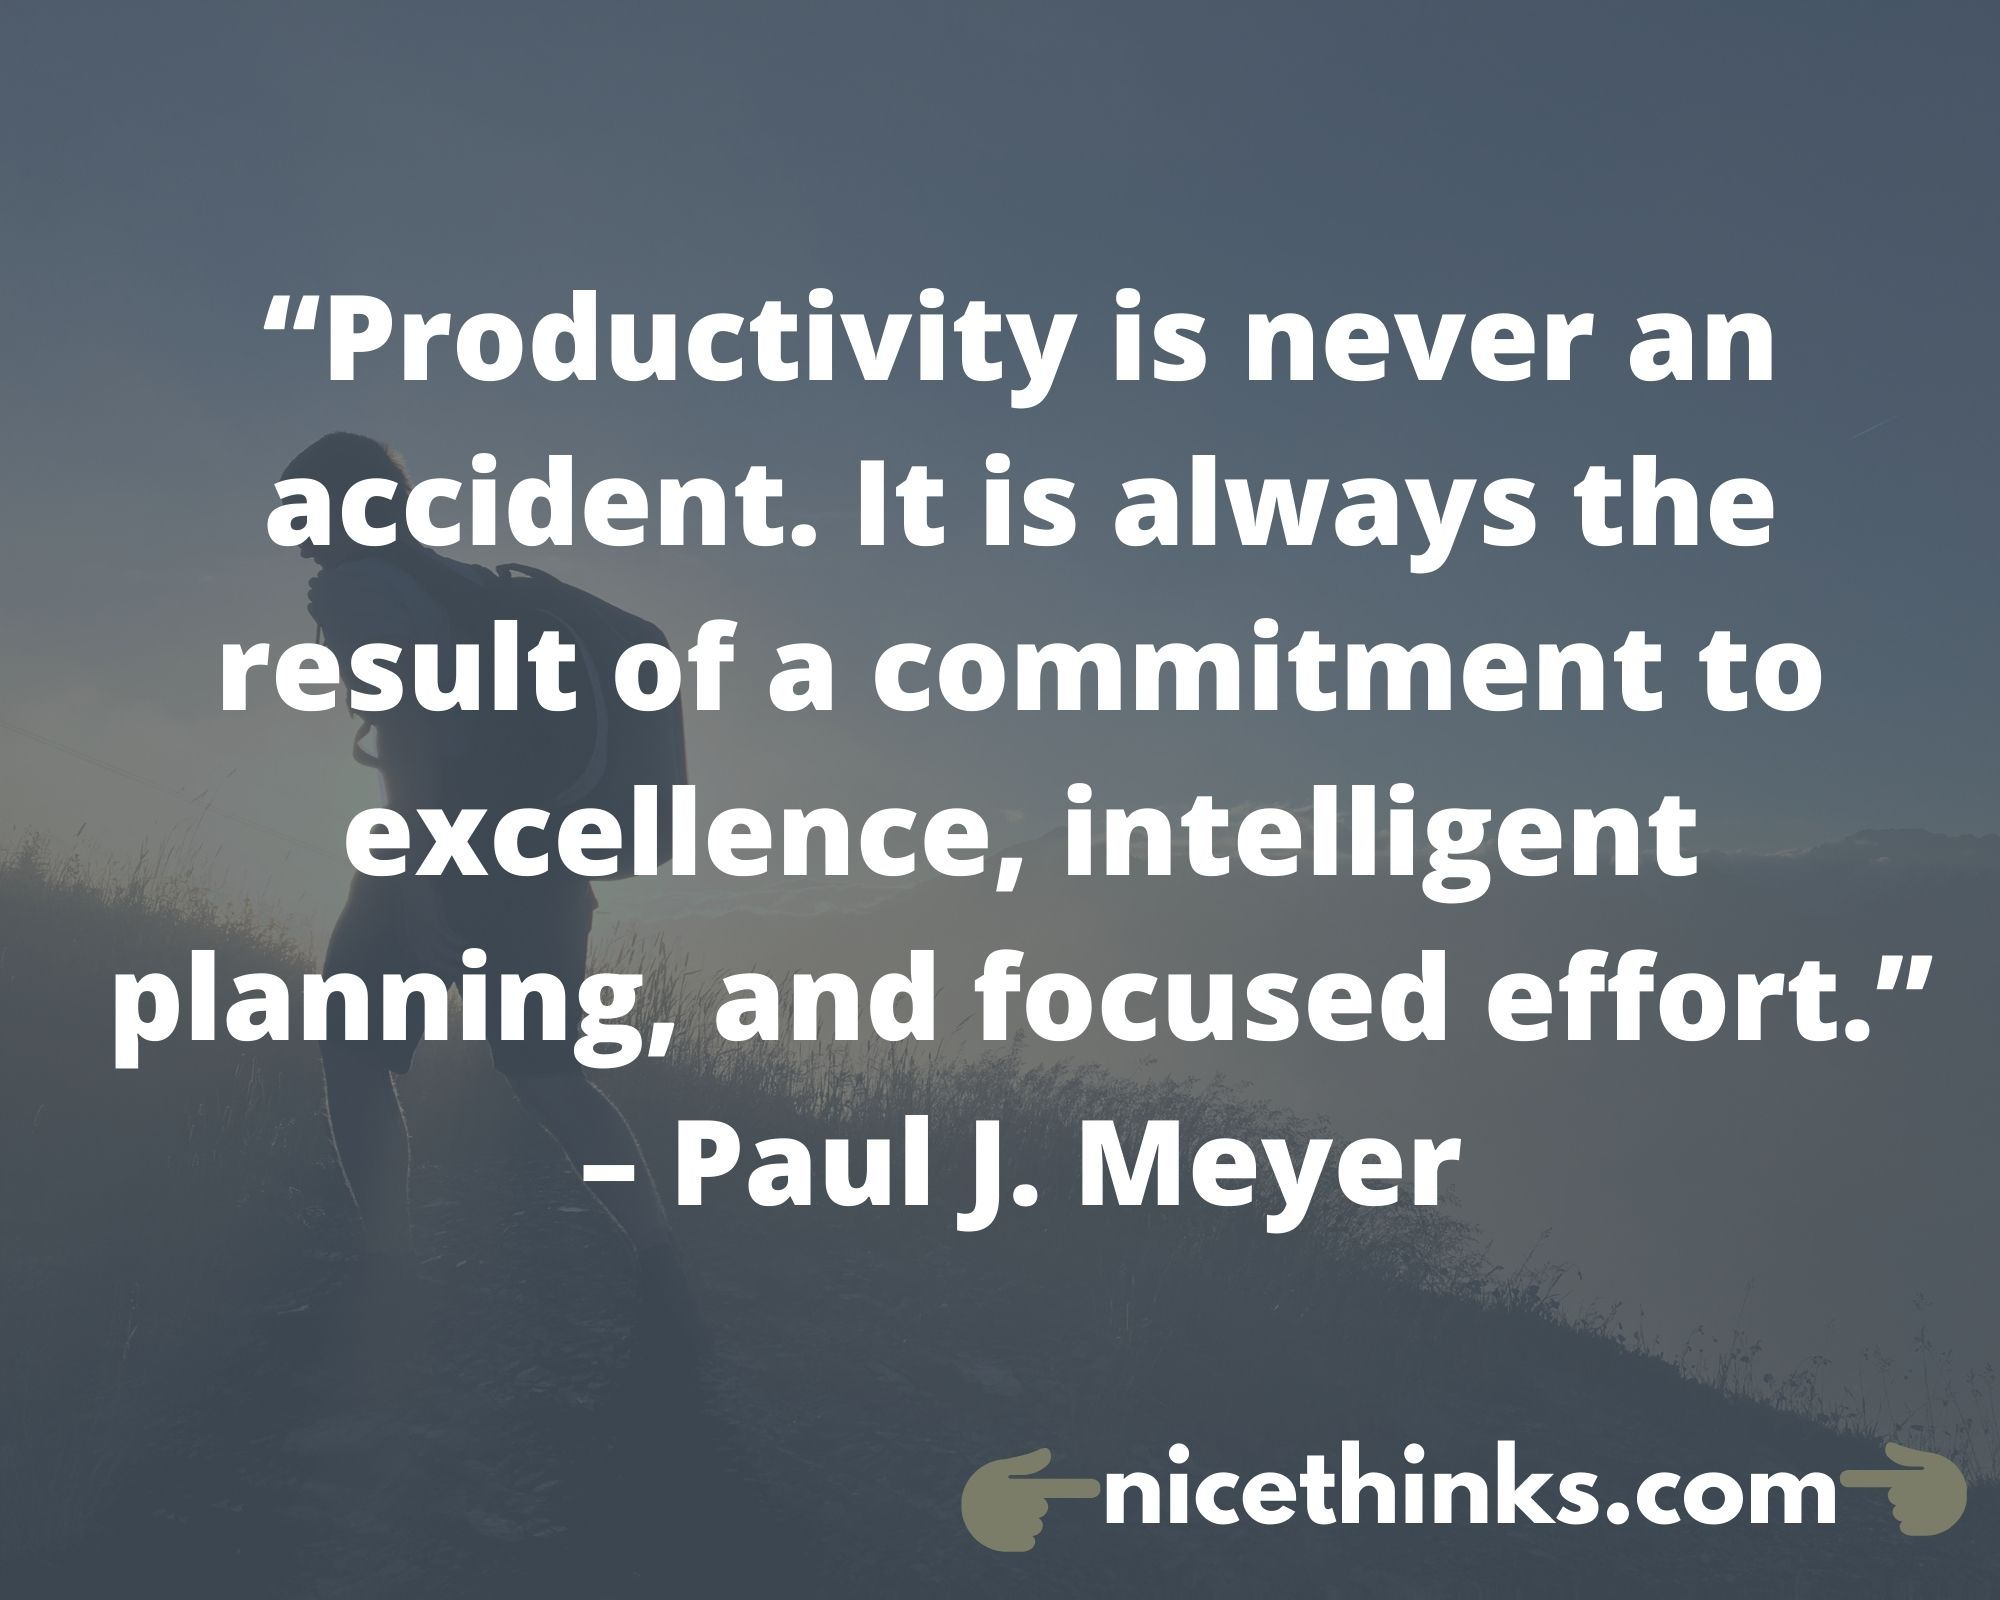 Paul J. Meyer Quotes